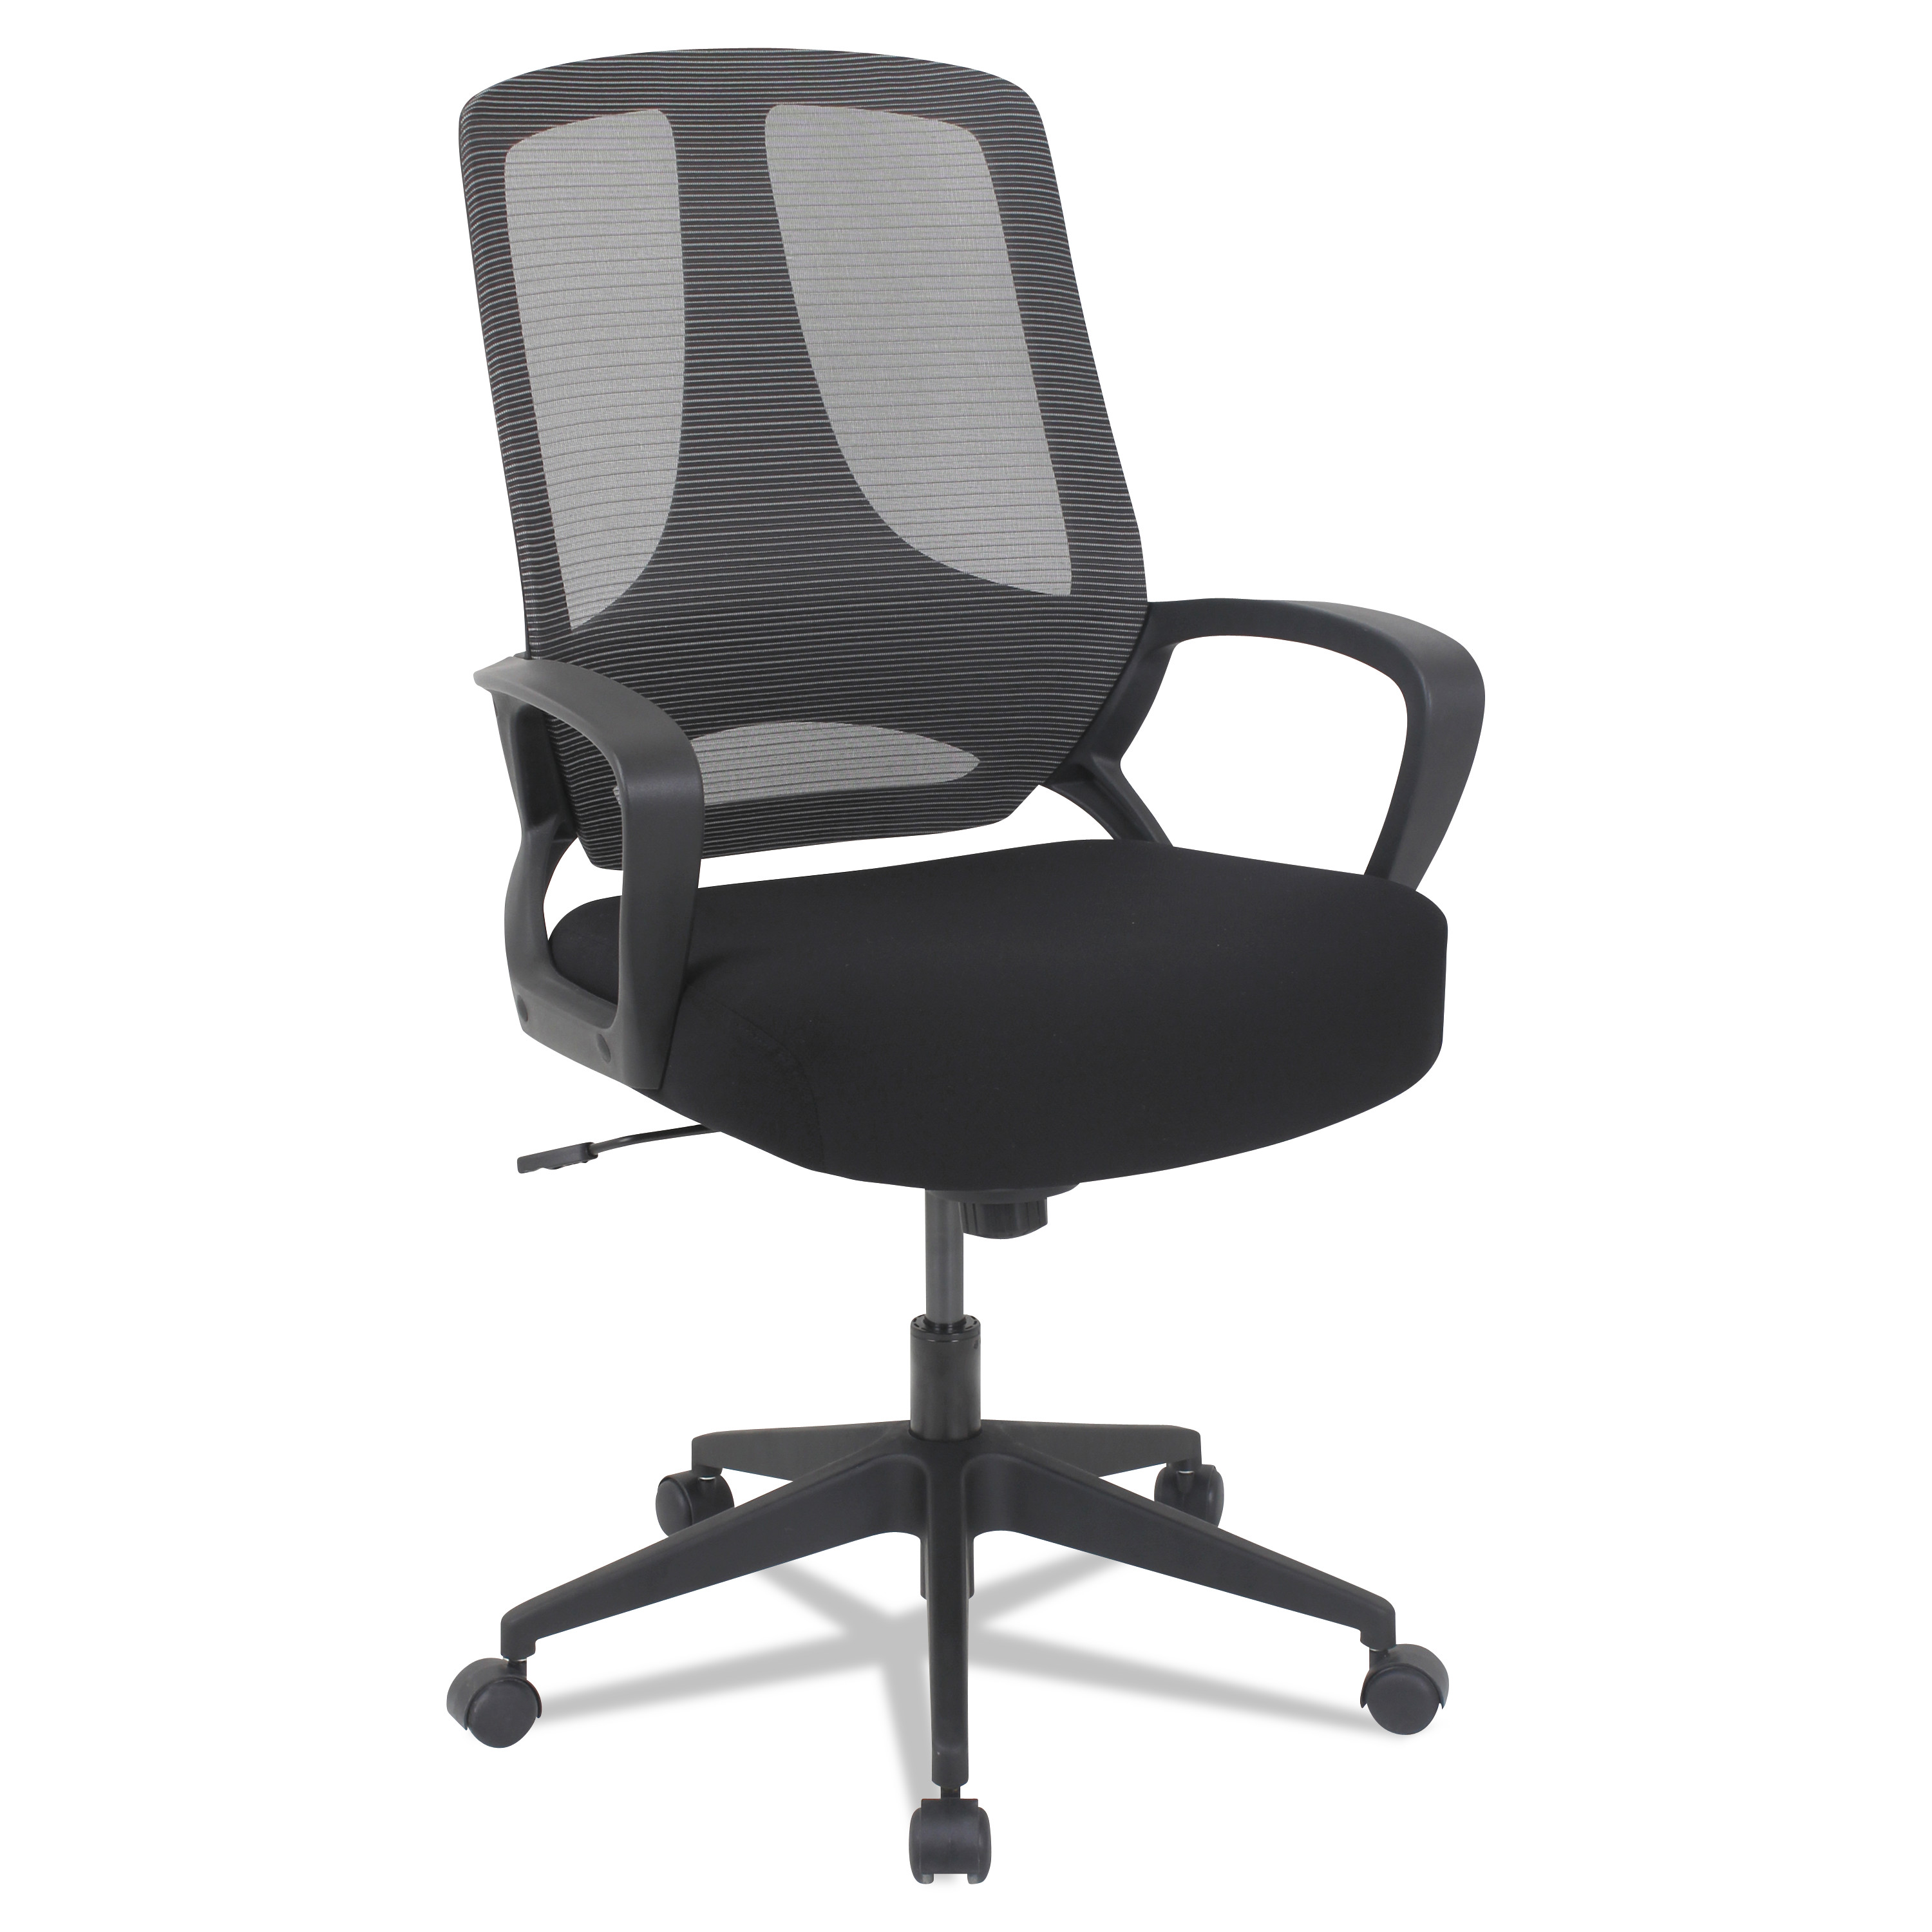 Alera Office Chairs Alera Mb Series Mesh Mid Back Office Chair Black